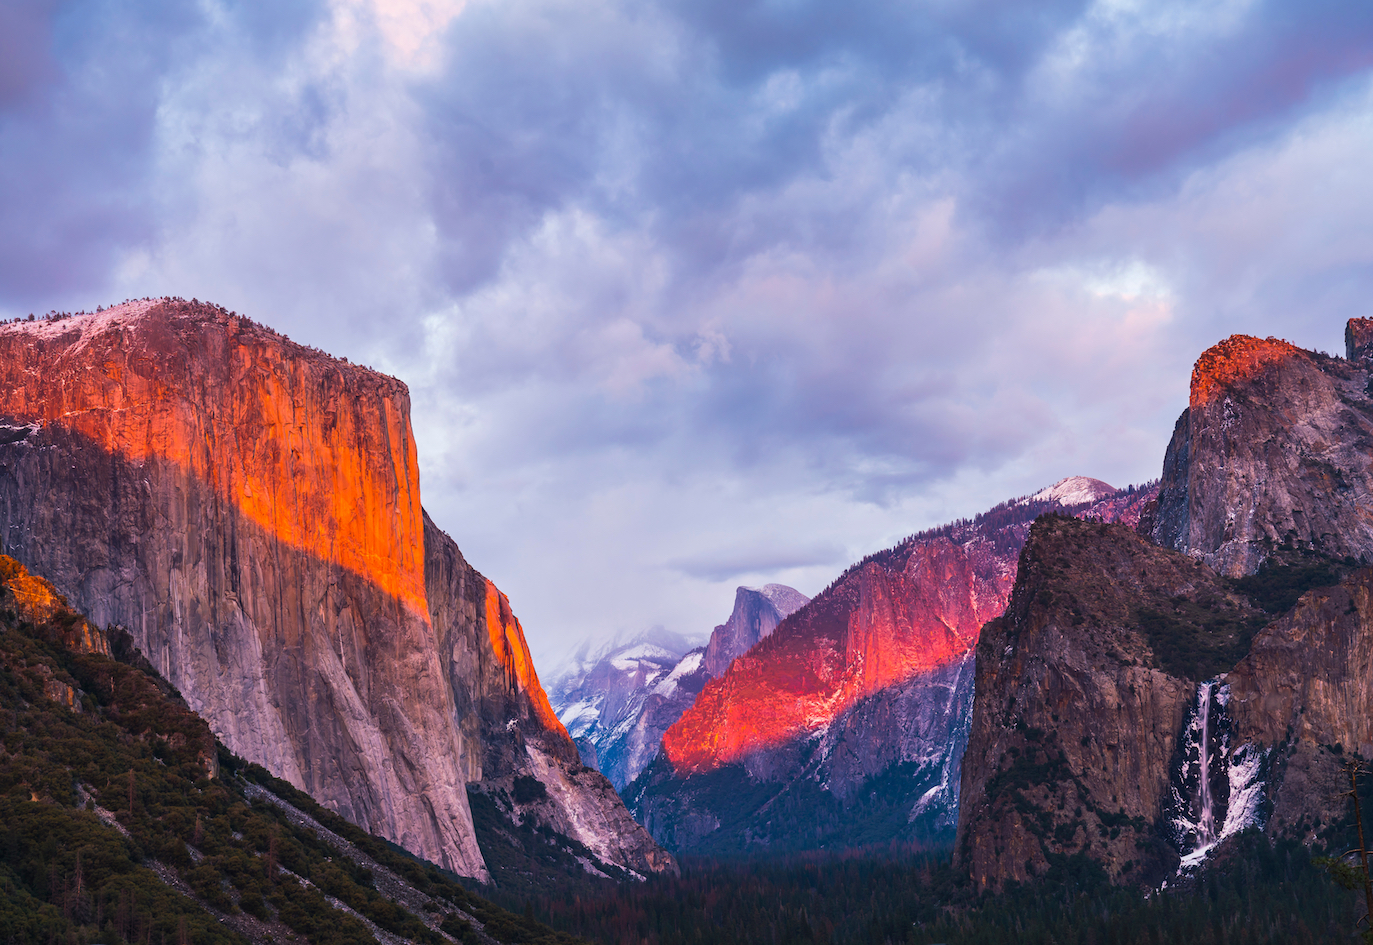 Granite from Yosemite National Park contains minerals that crystallized at significantly lower temperatures than ever thought possible.